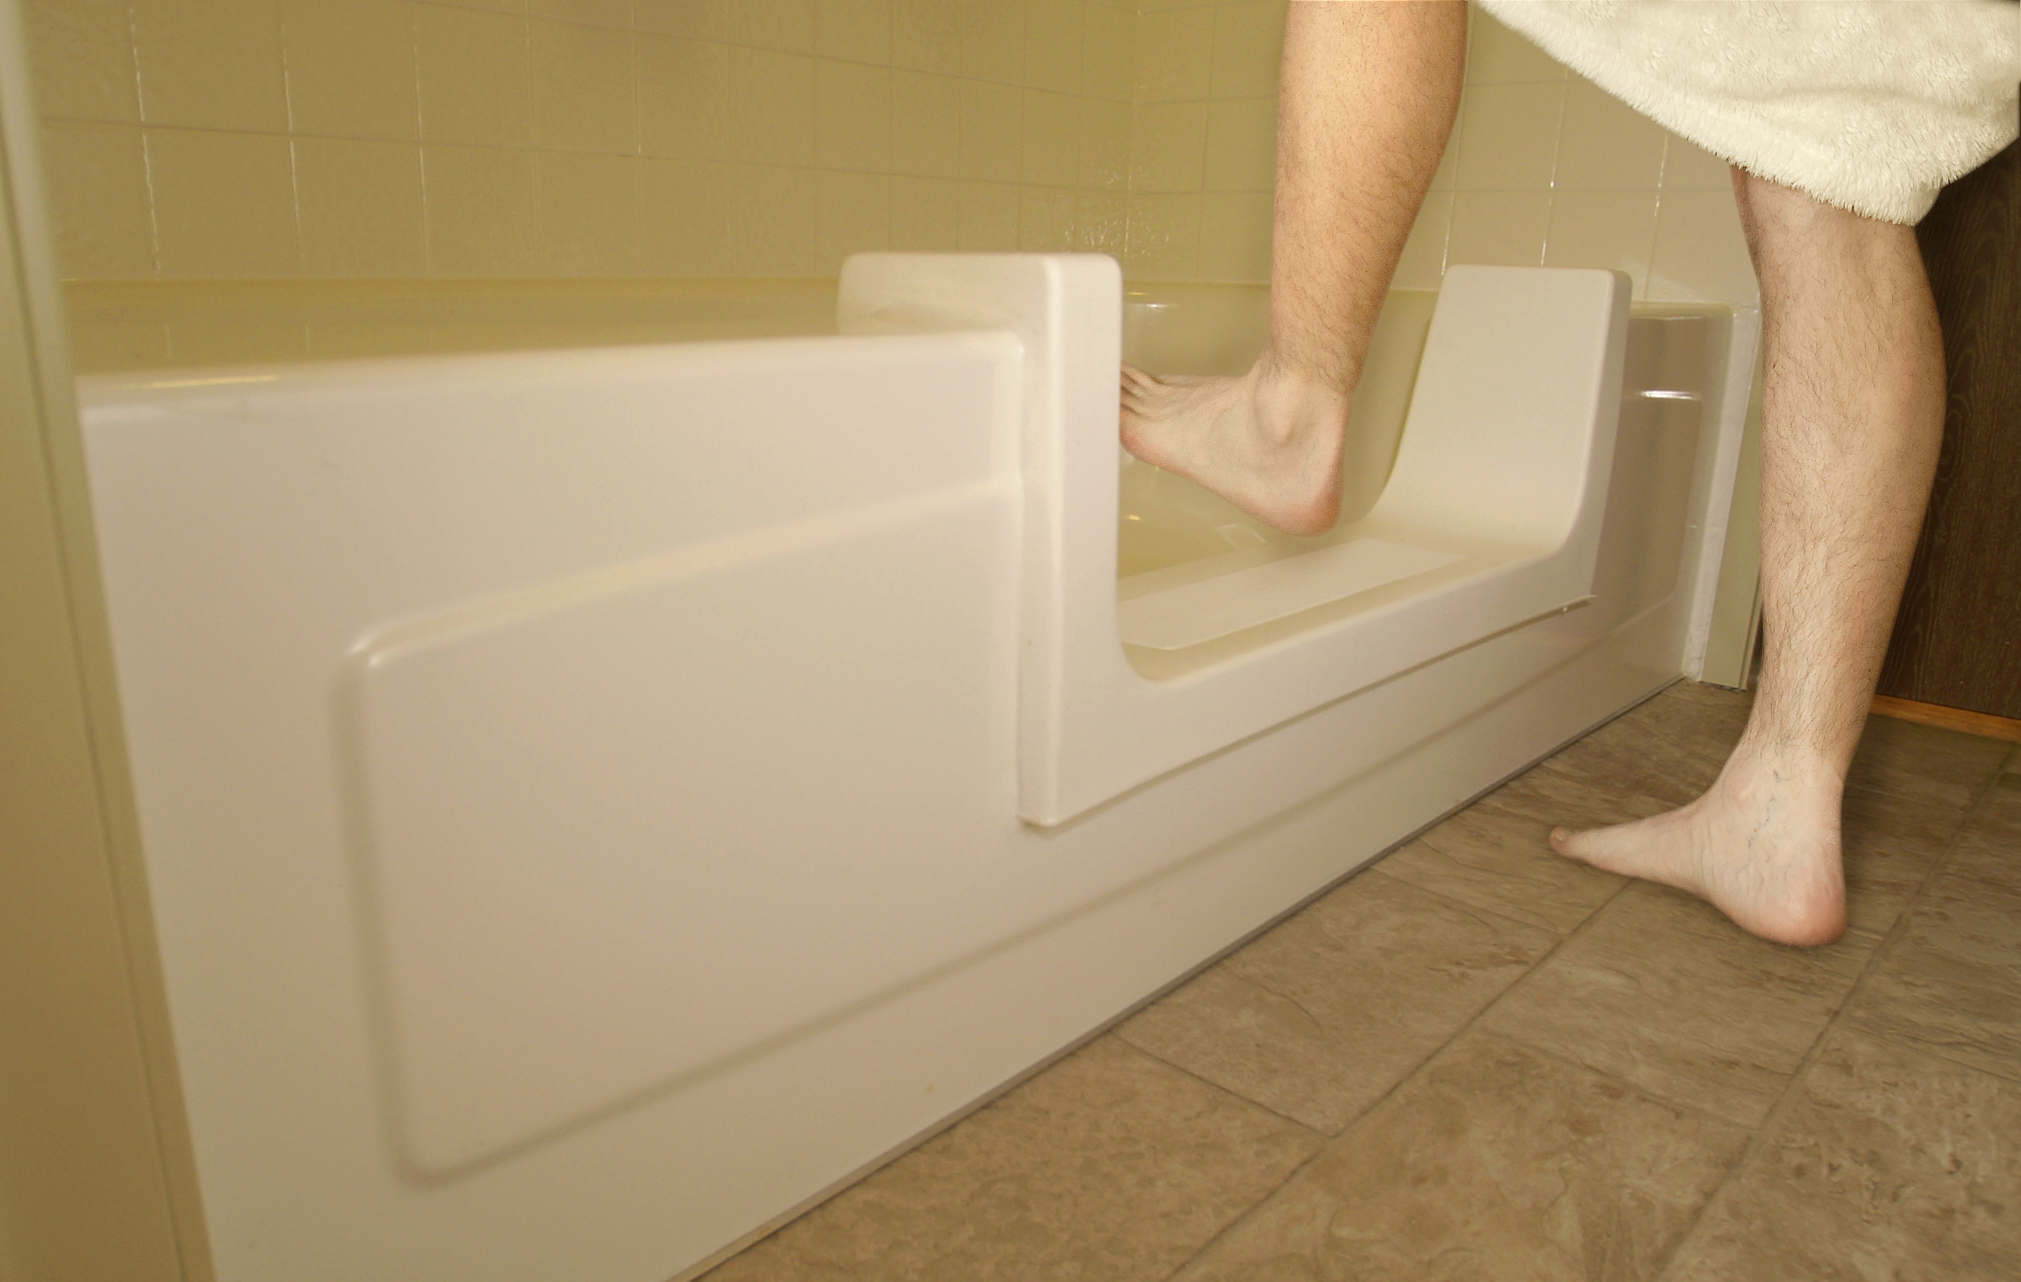 Easy Step Bathtub Conversion - Bathtub Ideas